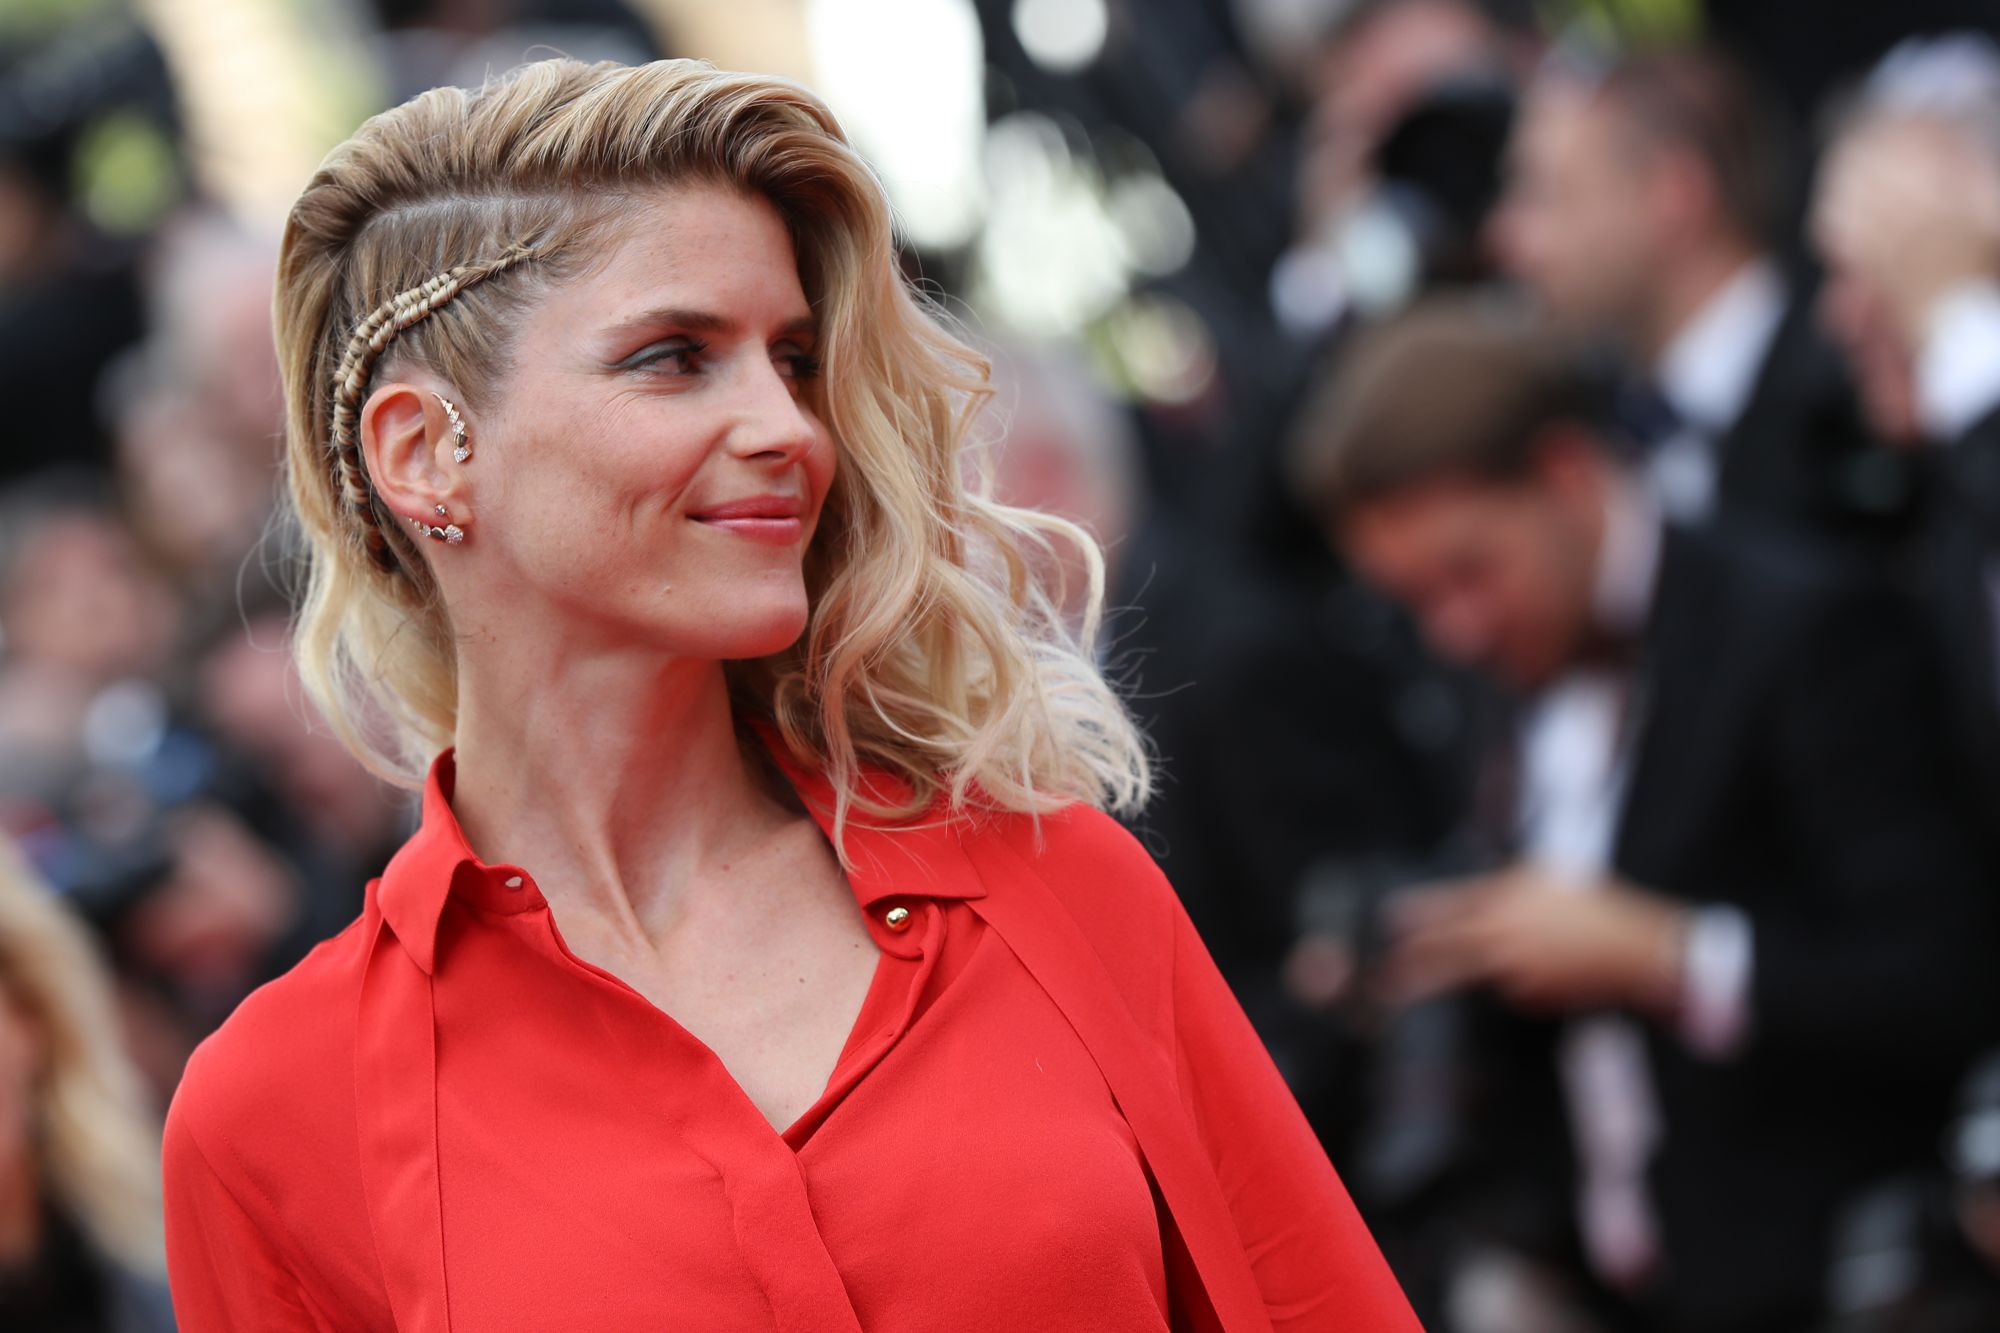 French actress Alice Taglioni wore Akillis Paris jewelry at the opening ceremony which coordinated perfectly with her asymmetric hairstyle.